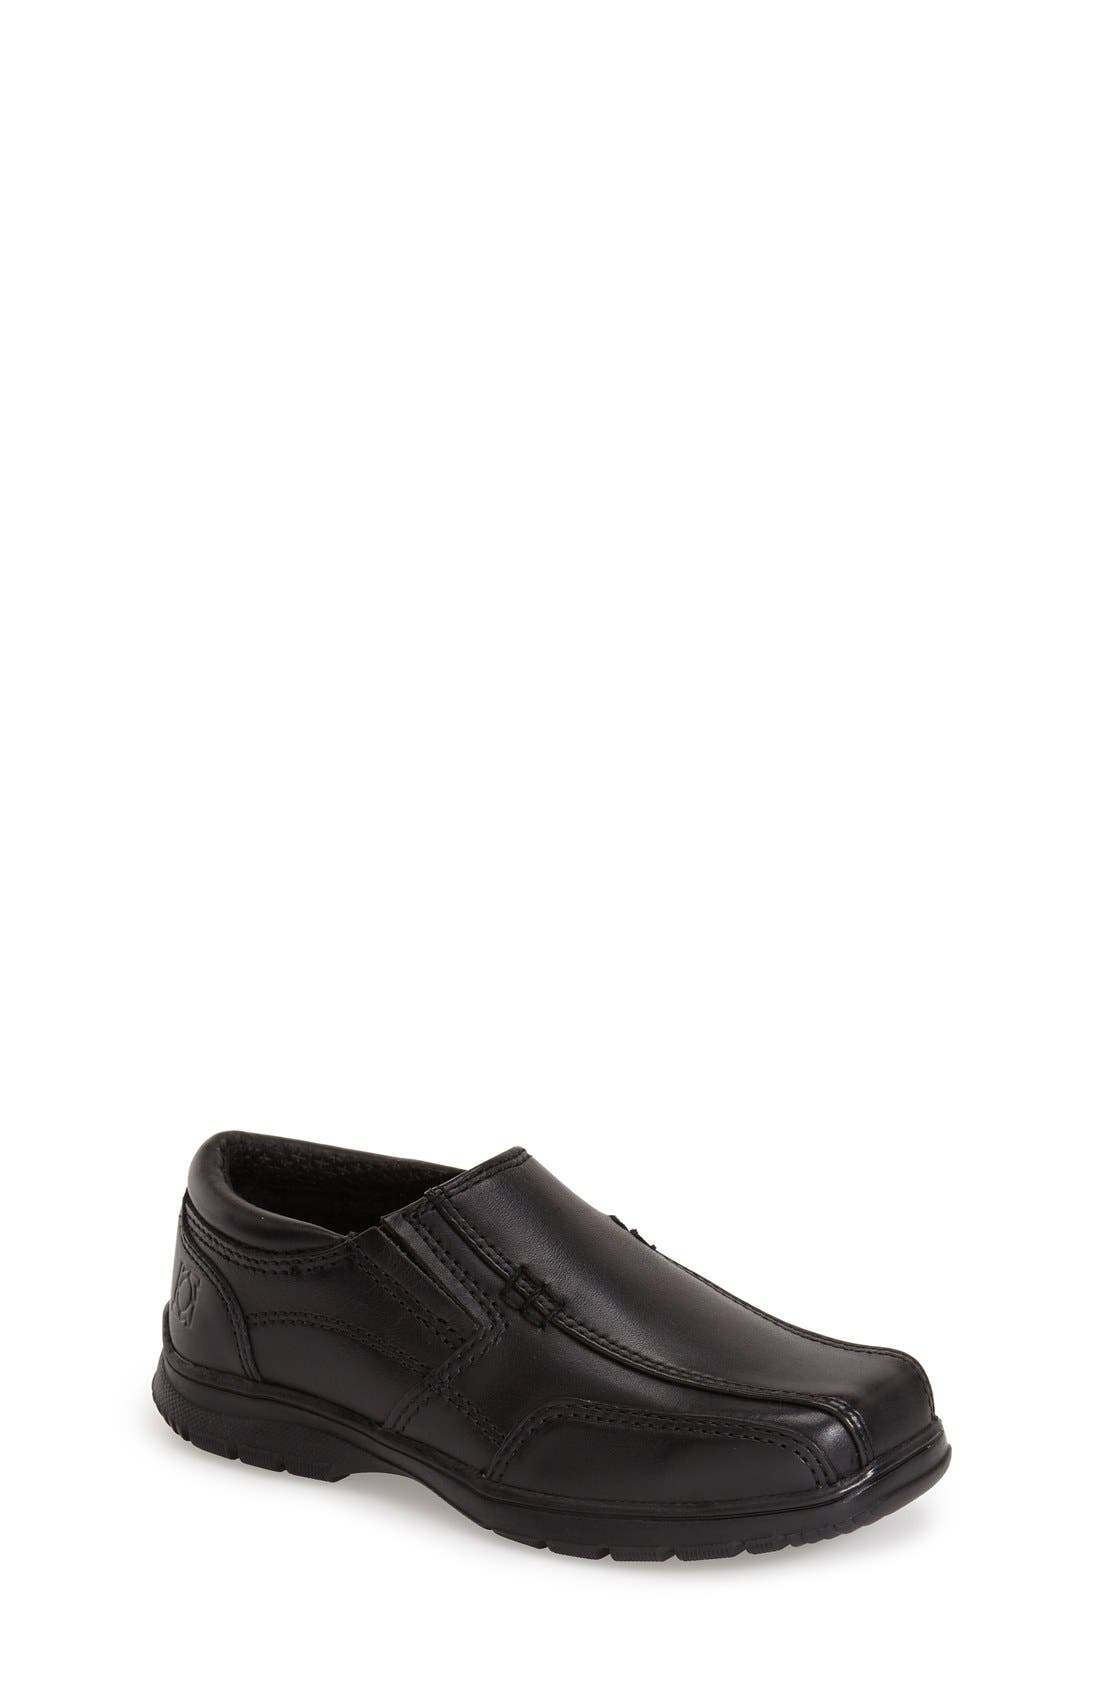 KENNETH COLE NEW YORK Reaction Kenneth Cole Check N Check Loafer